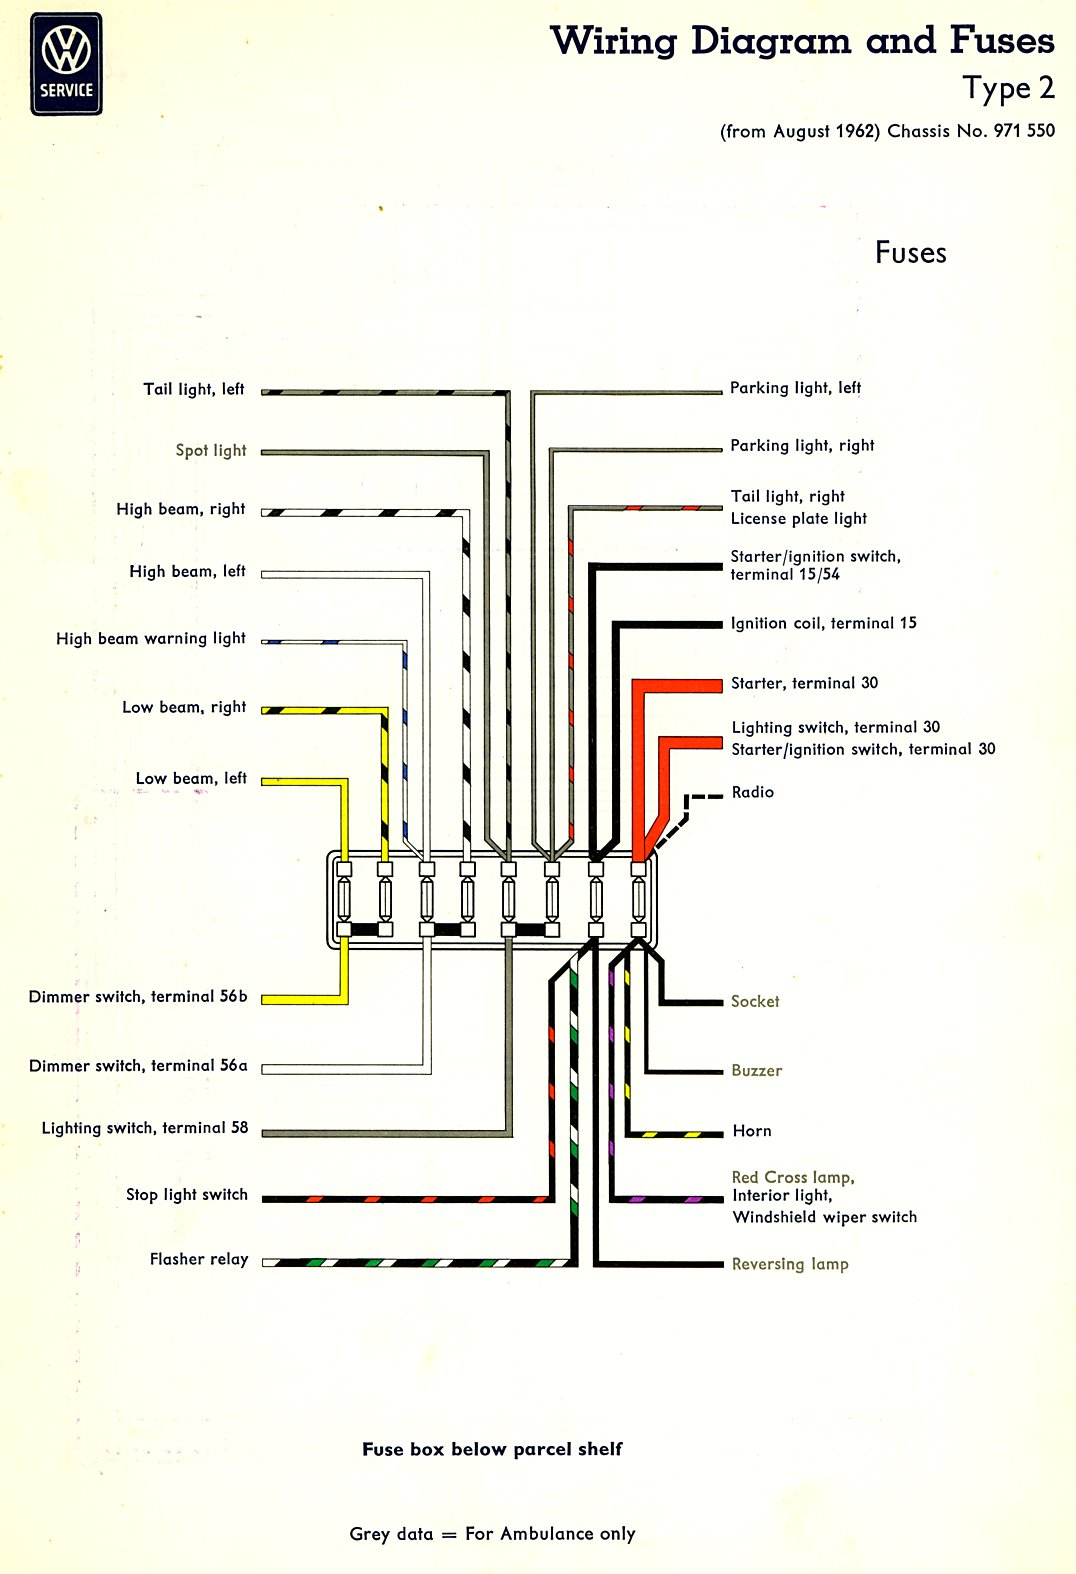 bus_63_fuses thesamba com type 2 wiring diagrams vw t4 electric window wiring diagram at gsmx.co